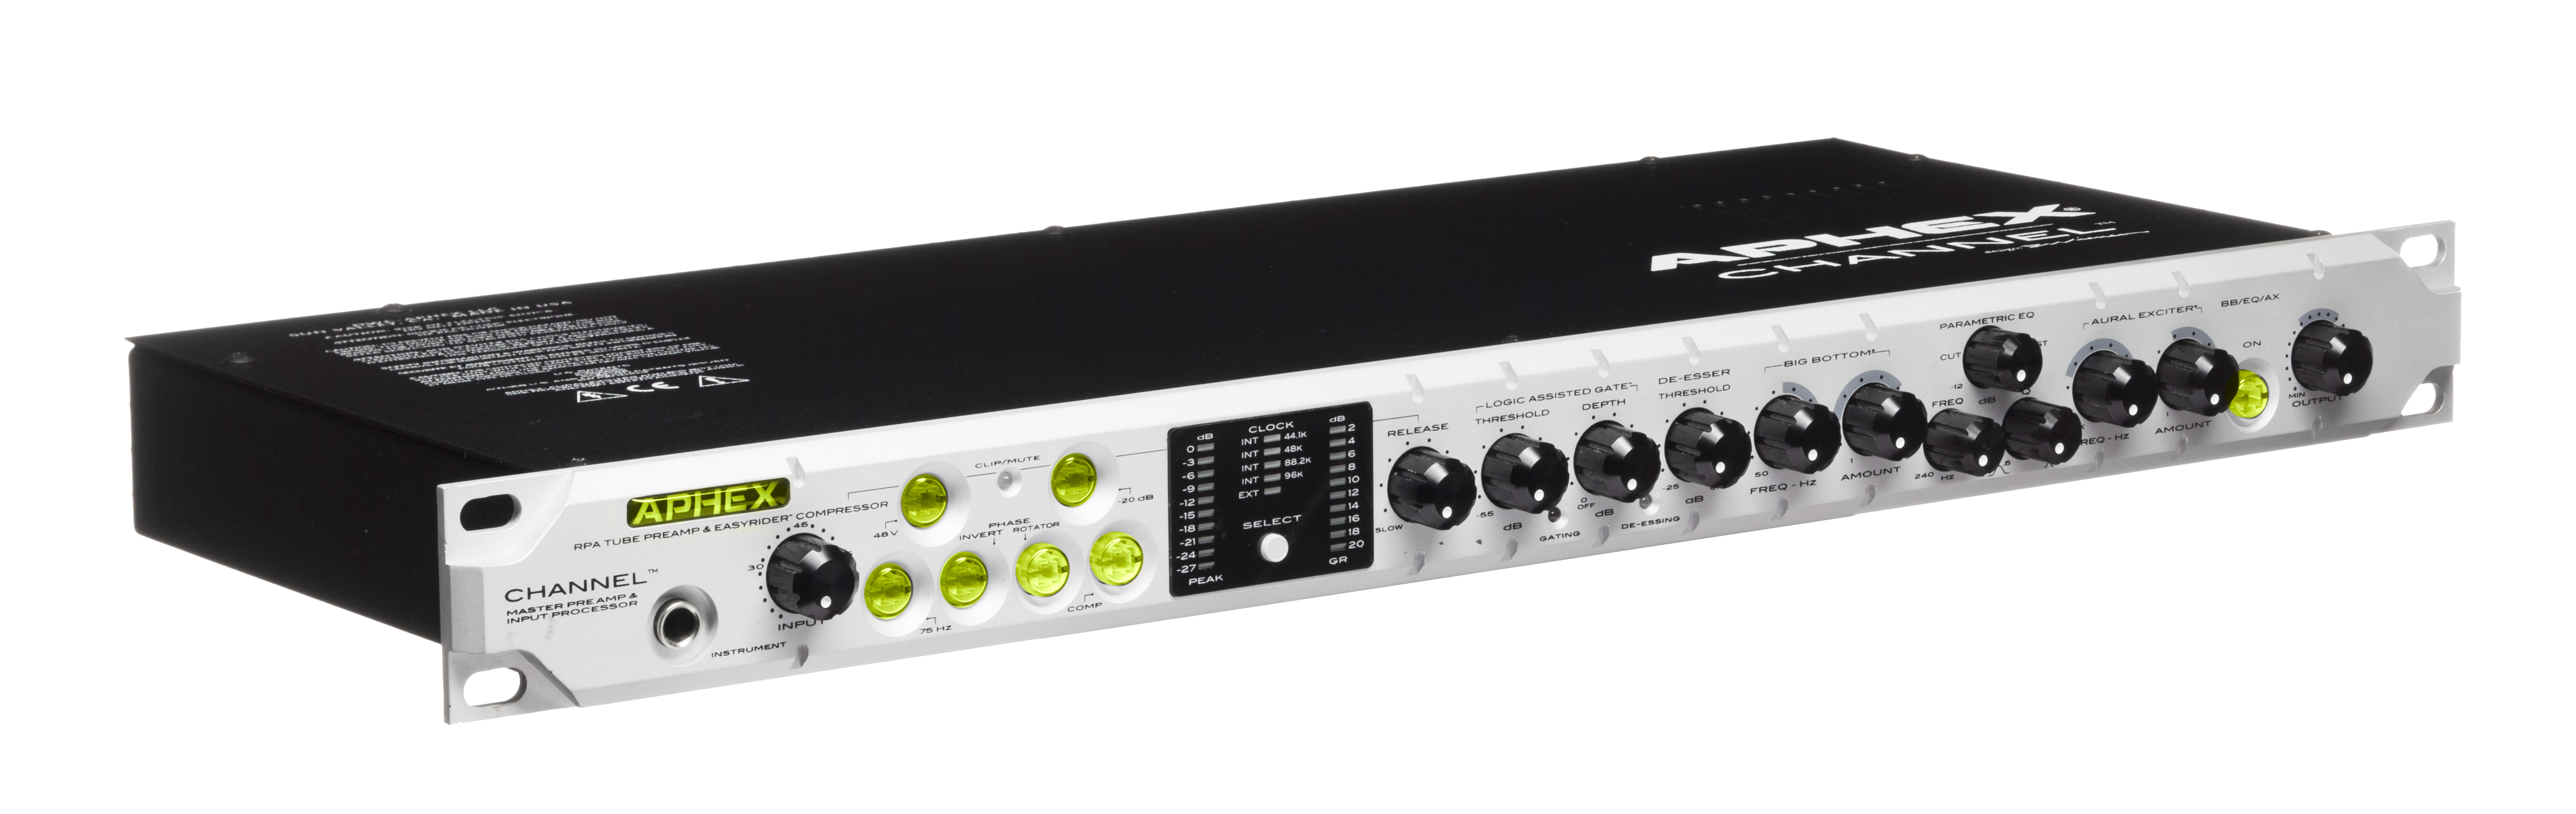 Channel Products For Professional Audio Recording Broadcast Dynamic Mic Preamplifier Owners Manual